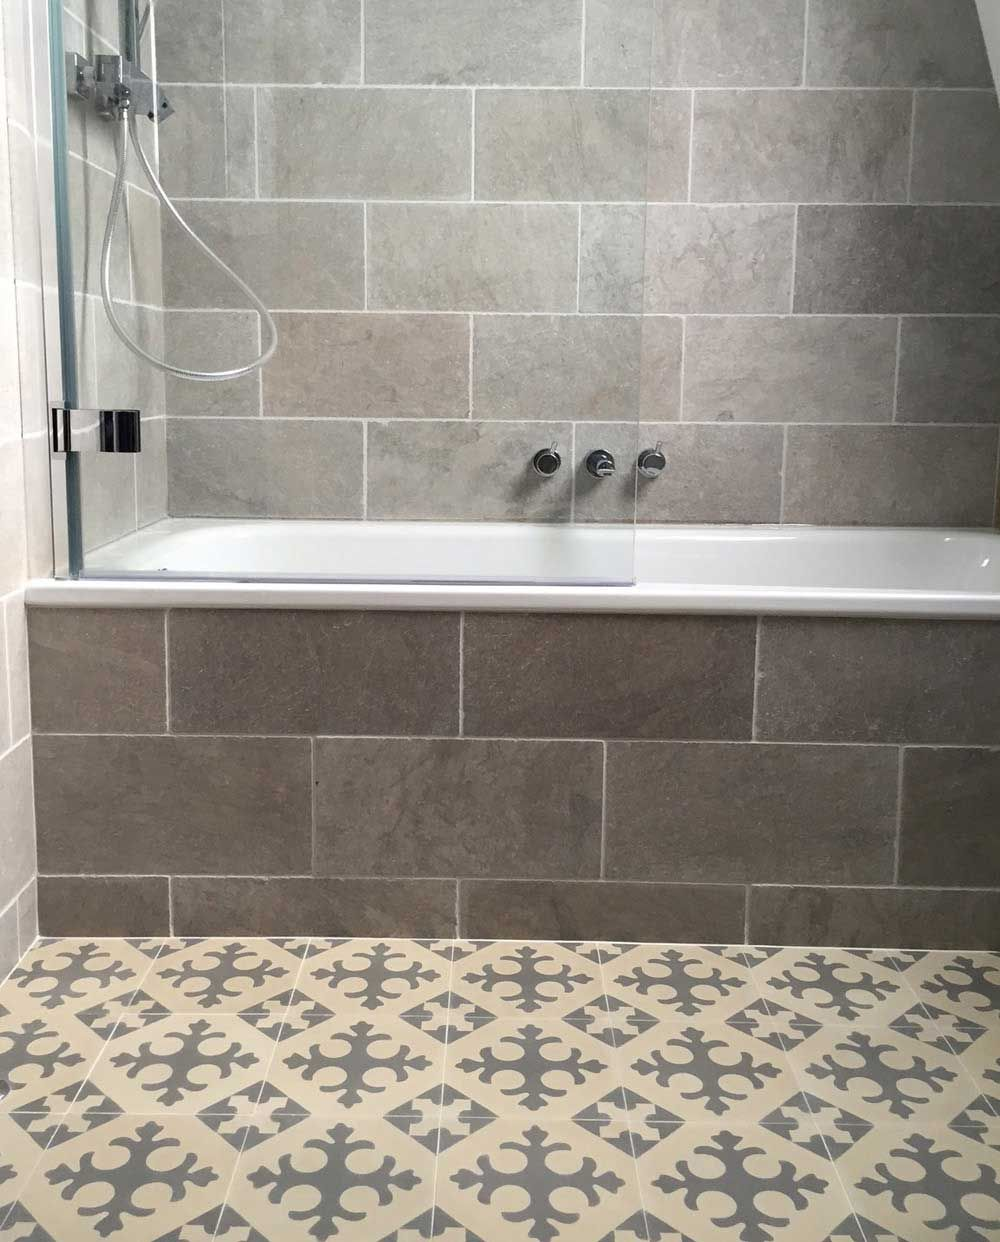 Fontaine grey limestone tiles wall tiles natural stones and cement bathroom featuring fontaine grey natural stone tumbled wall tiles 400 x 200 x 12 mm with dailygadgetfo Images